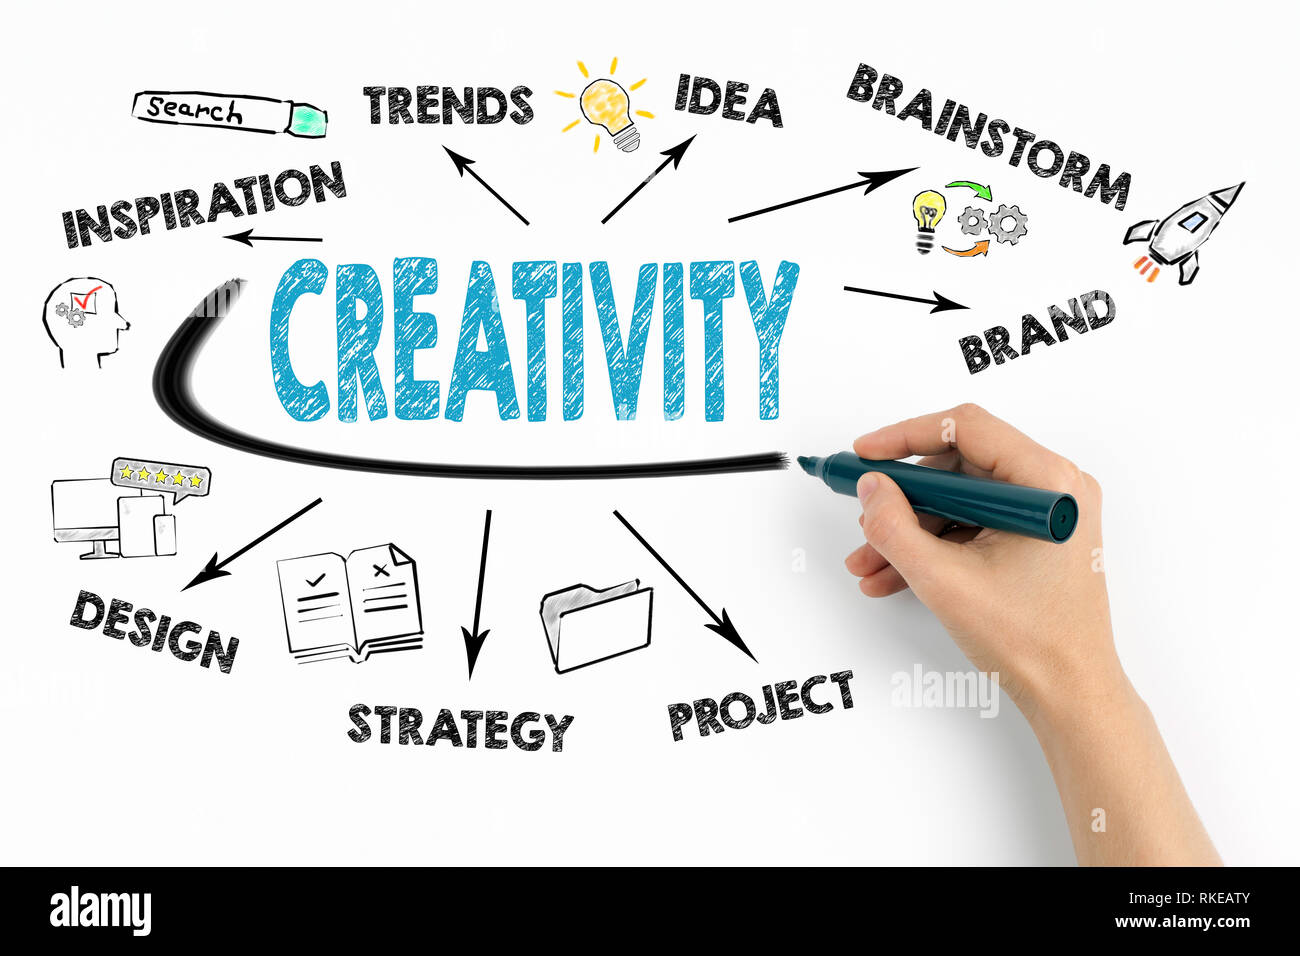 Creativity Concept. Chart with keywords and icons - Stock Image